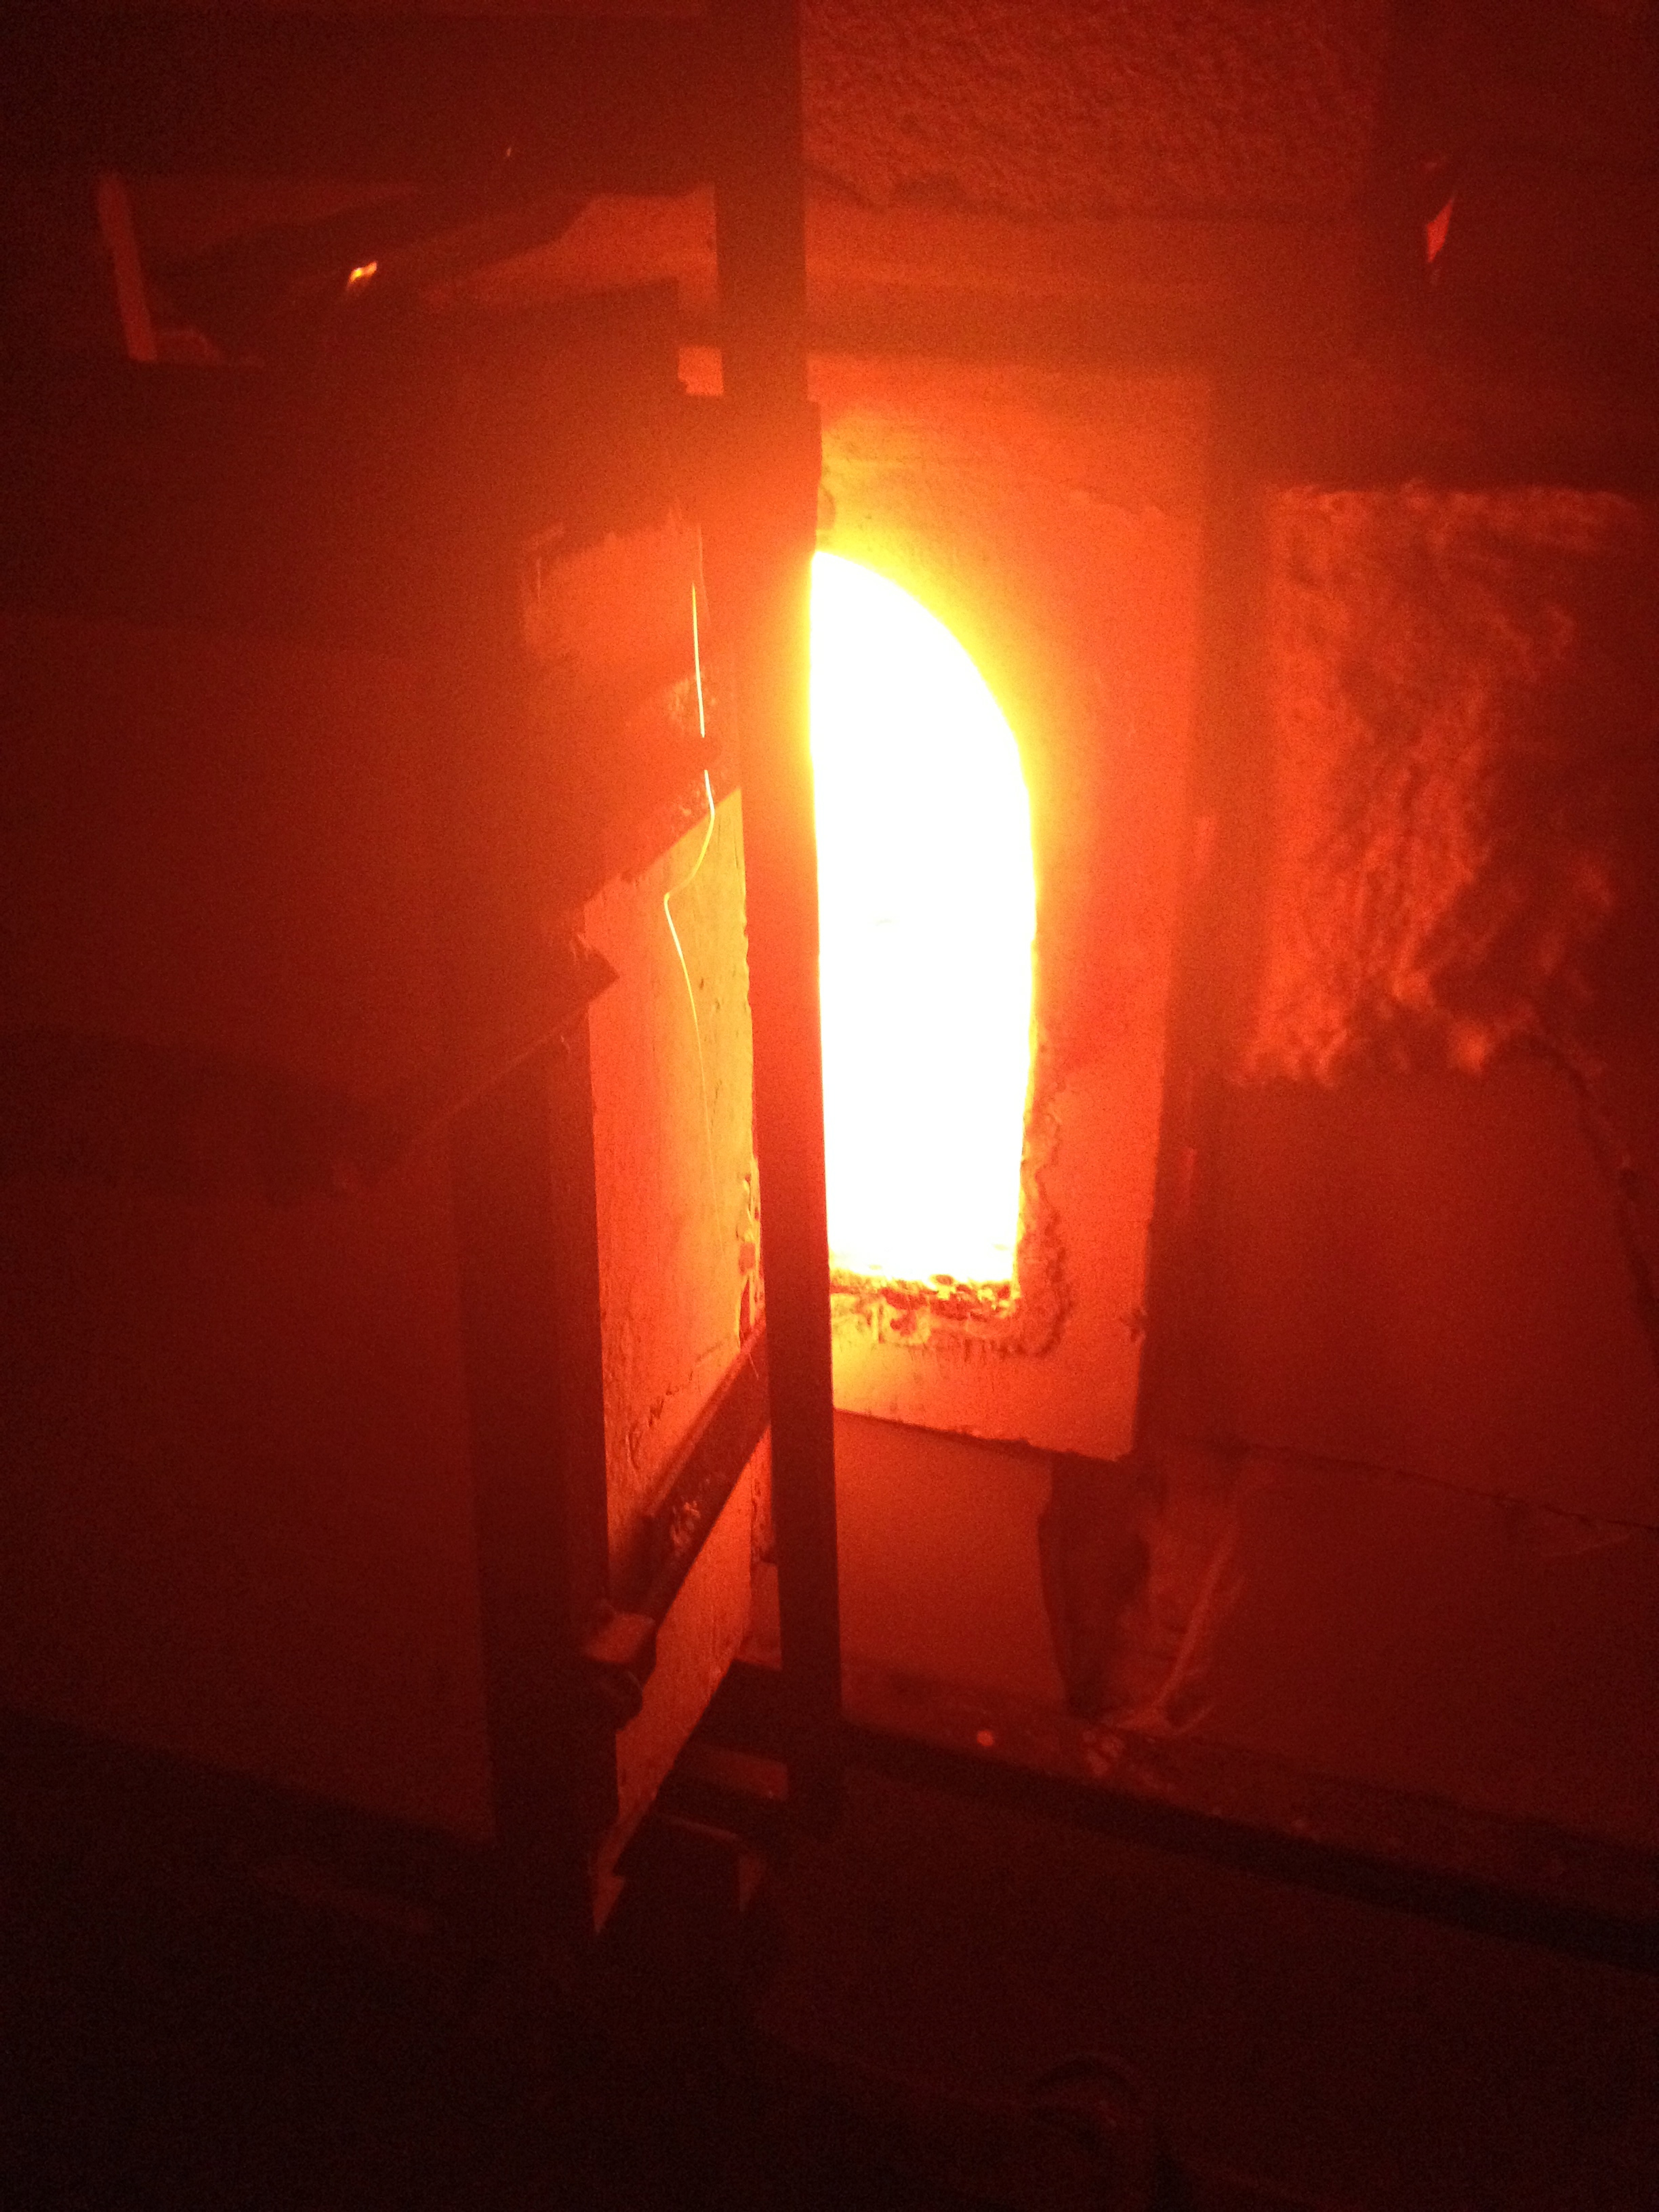 the kilns are on and hot. hot hot. keep watching for the latest creations.